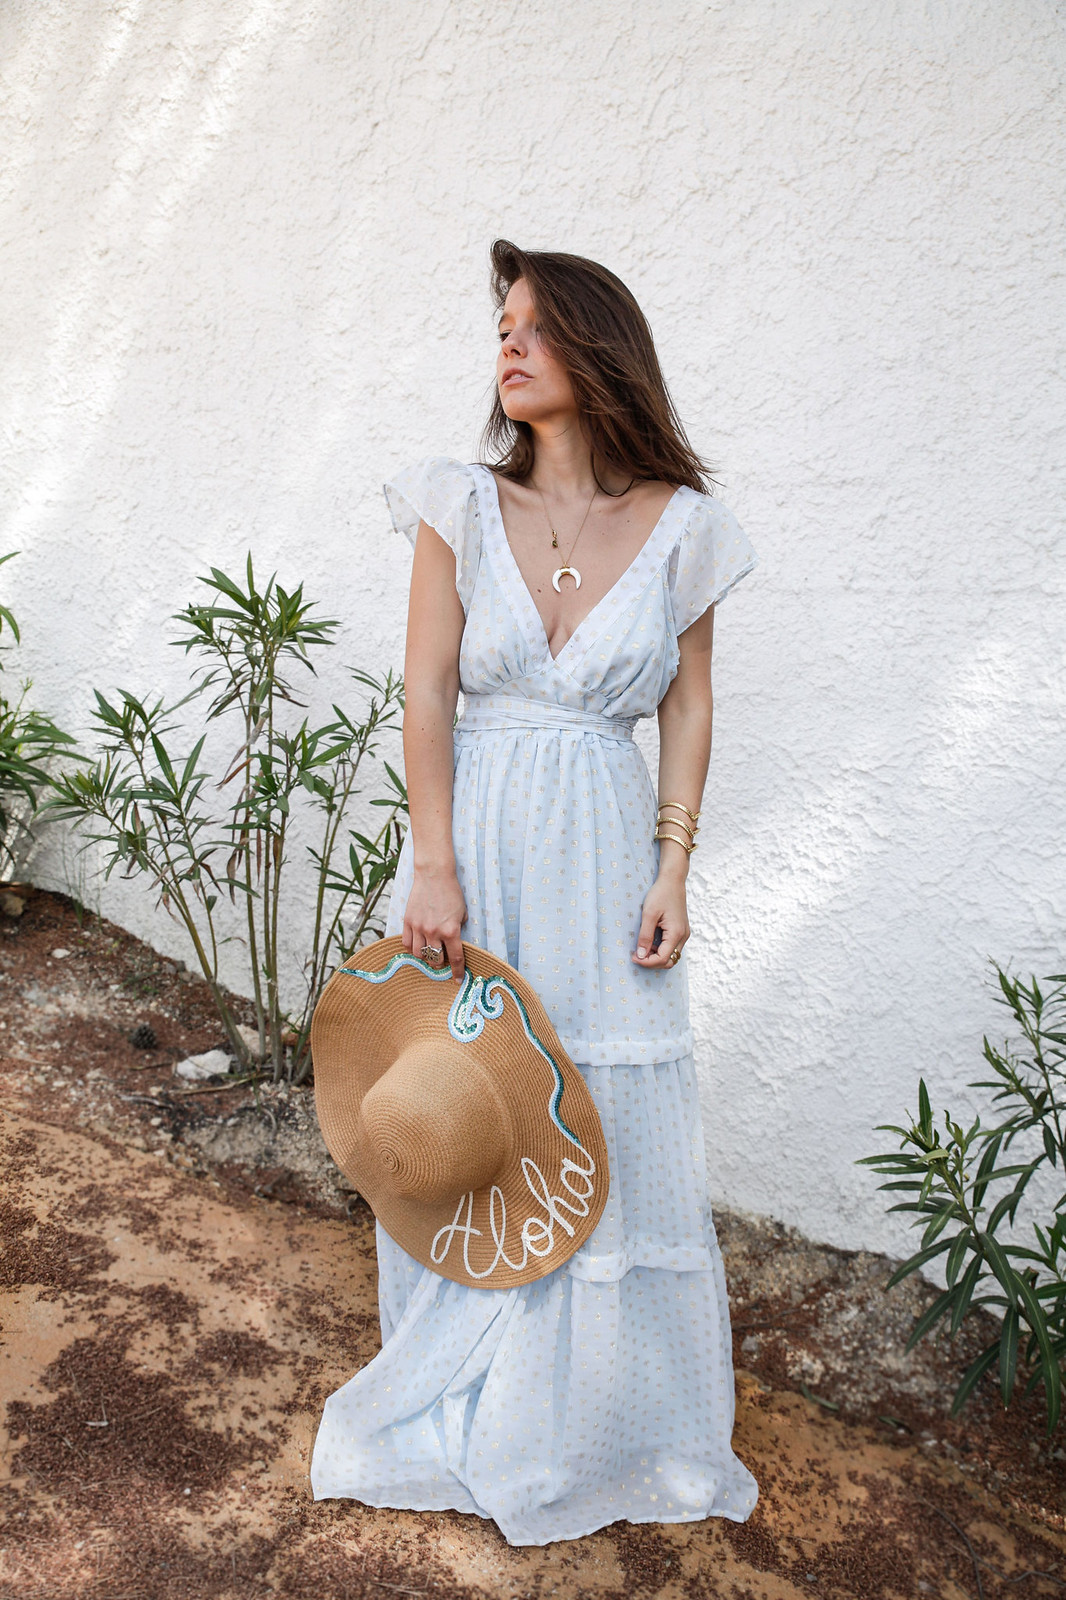 04_golden_dots_lunares_dorados_vestido_azul_boho_deby_debo_long_dress_theguestgirl_influencer_barcelona_style_content_creator_fashion_spain